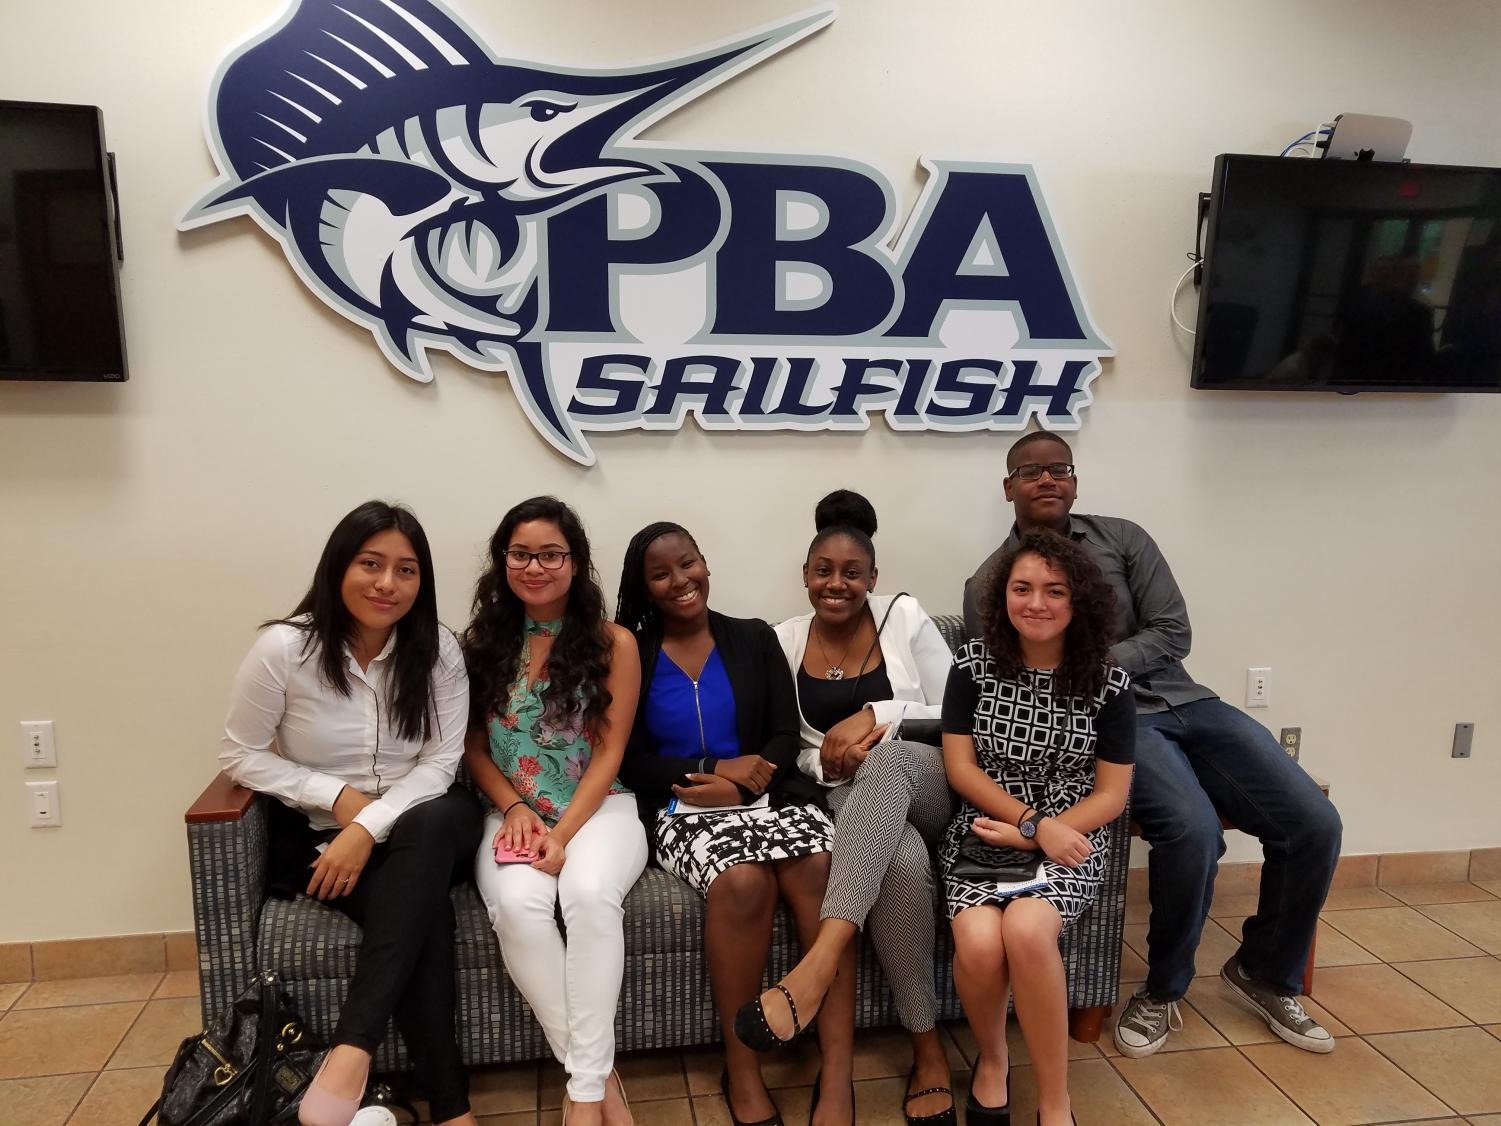 OUTSTANDING: To be nominated for the Pathfinder High School Scholarship Award is a major achievement. It applies to this year's Hurricane nominees, shown after completing their interviews at Palm Beach Atlantic University March 7: (from left) Deilyn Mendez-Lopez, Victoria Villalba, Nondiana Emmanuel, Madyson Roye, Rebeca Reyes and Michael Andre. Not shown: Jordan Hall and Andres Venegas. Next comes the annual Pathfinder Awards Ceremony, May 17 at the Kravis Center.